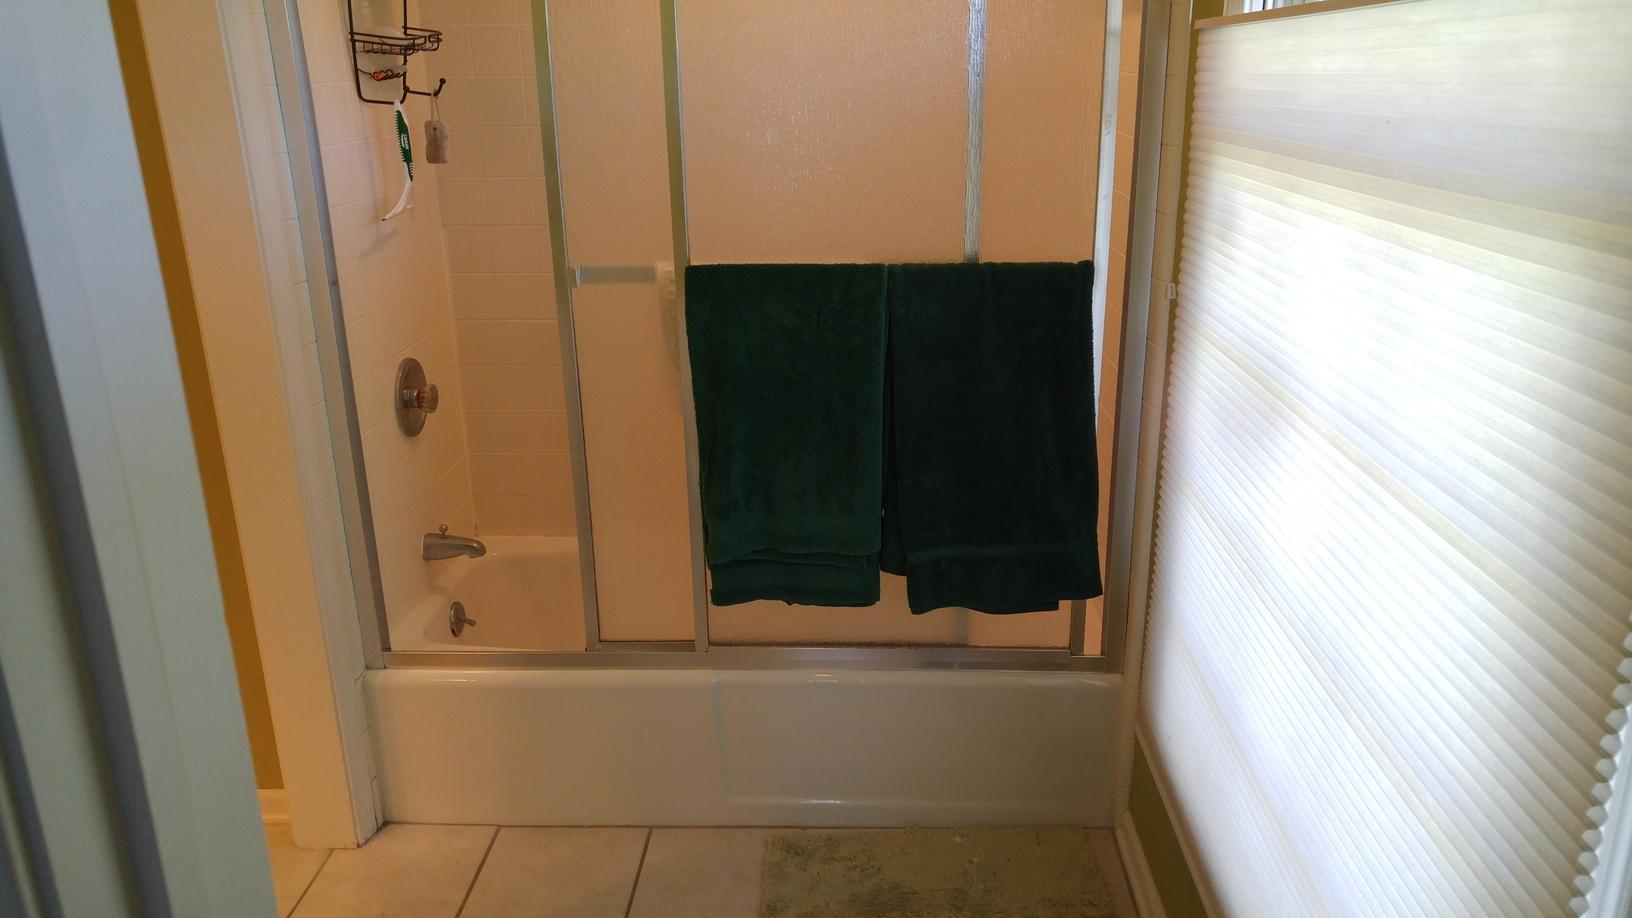 Bathroom Remodeling in Maumee, OH - Before Photo